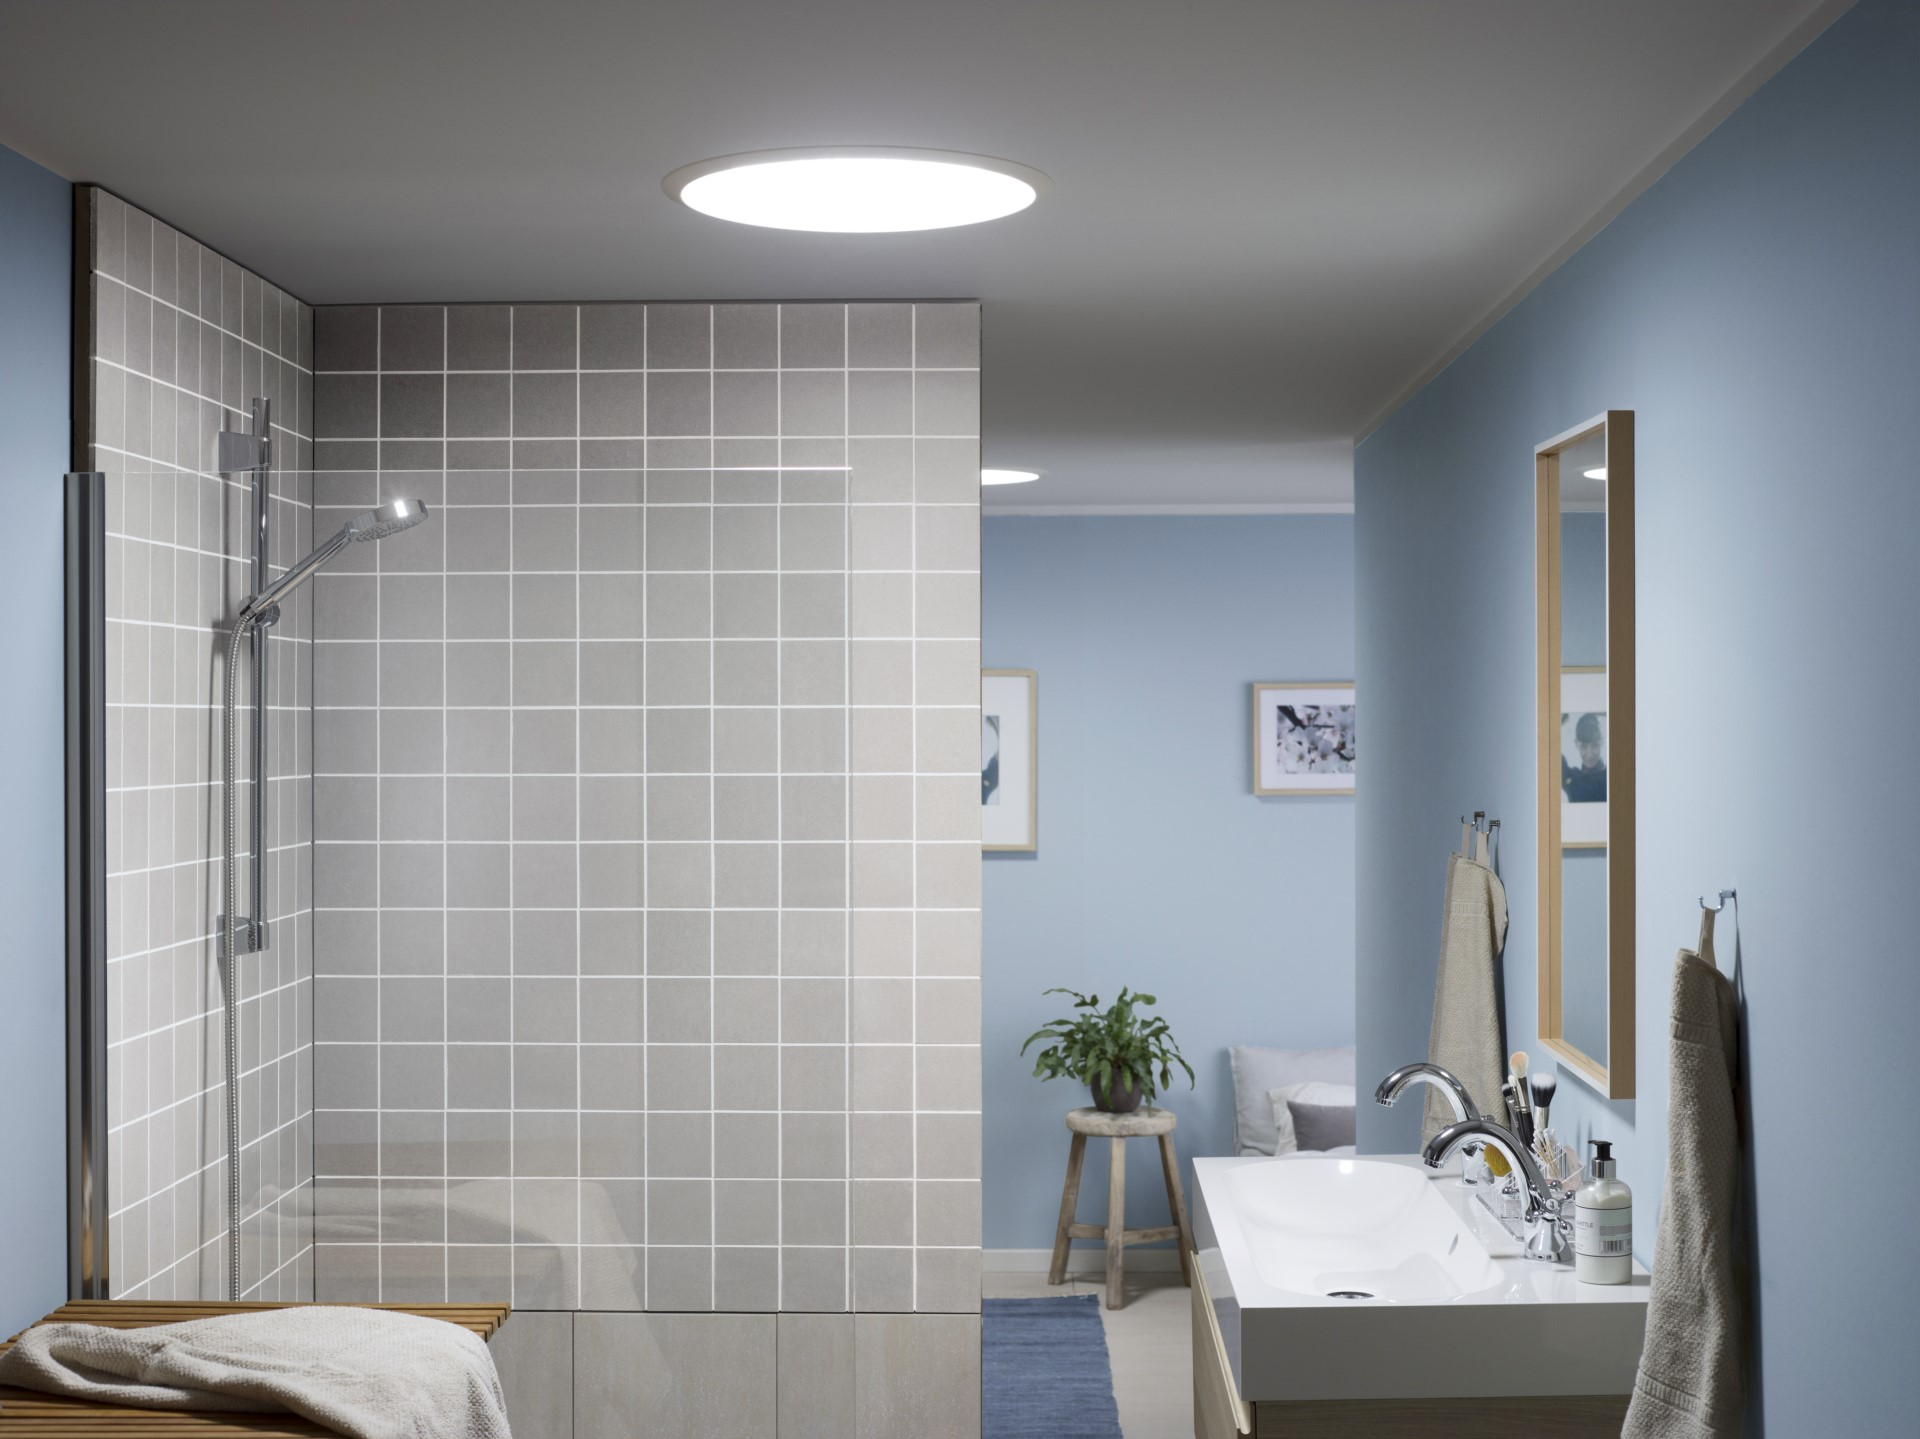 Come rendere luminoso un bagno cieco mansarda.it